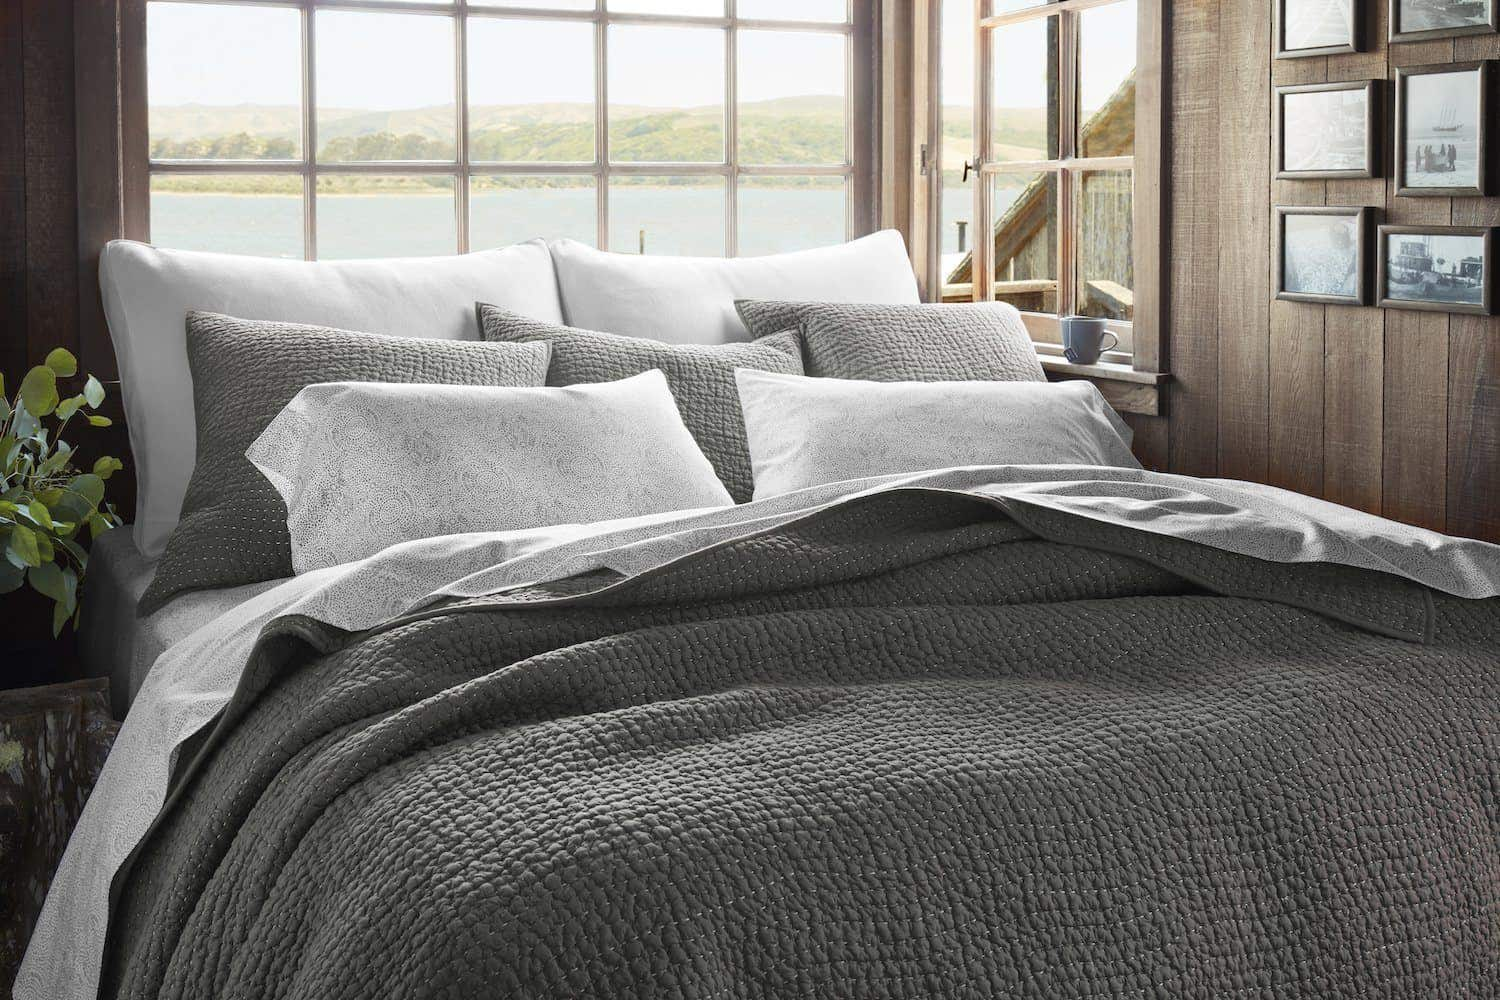 7 Eco Friendly Bedding Brands With